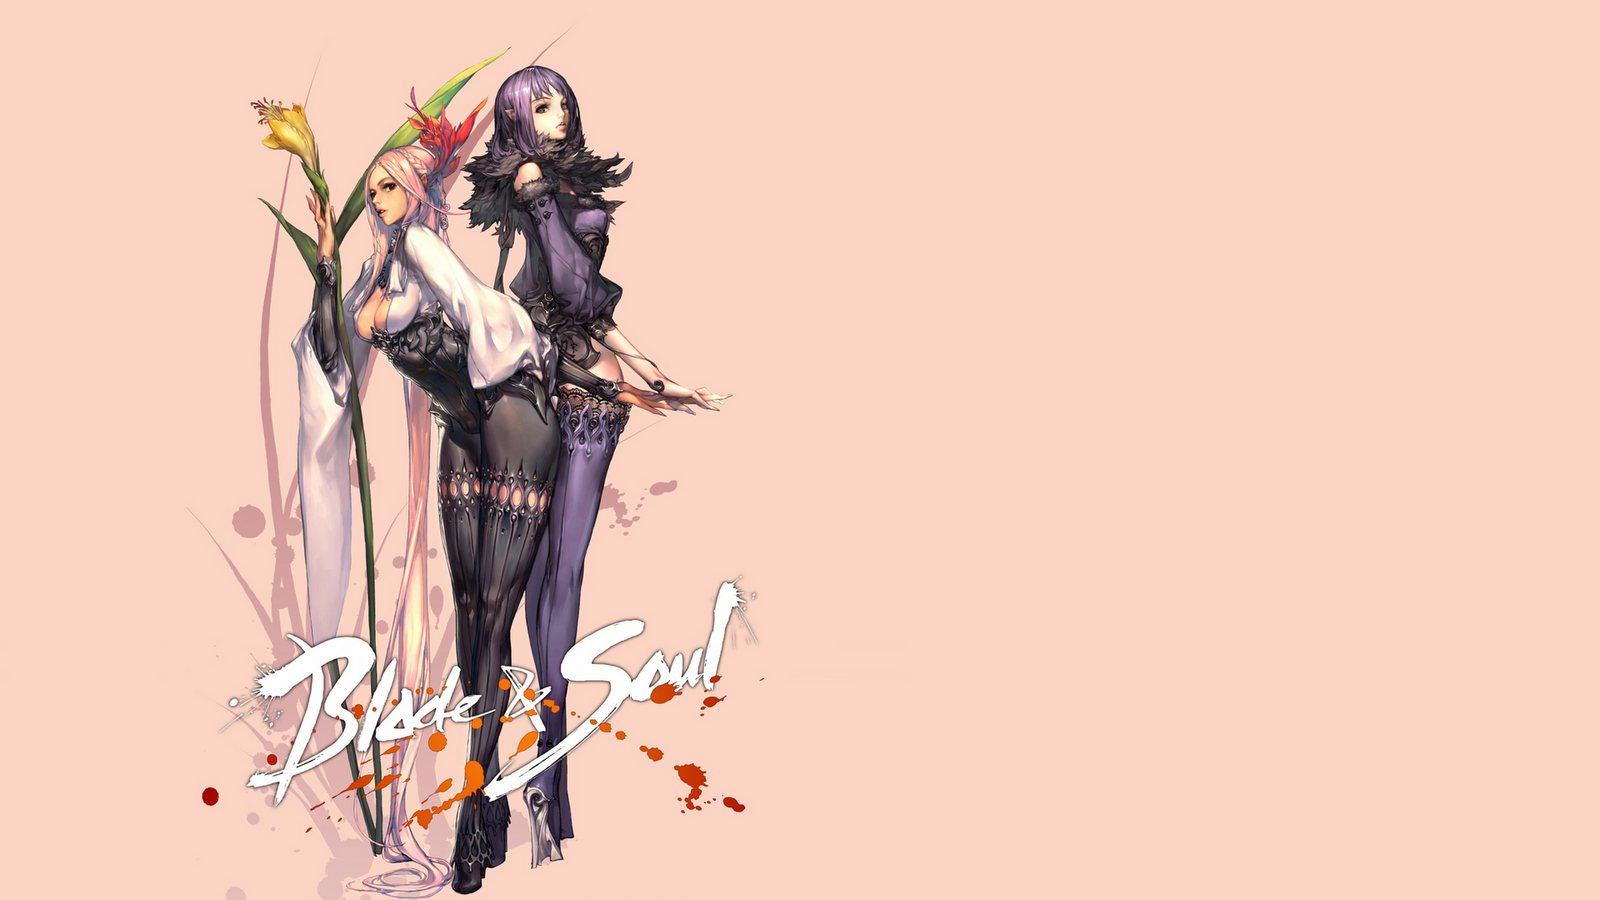 Soulwallpapers2 Blade Soul Video Game Wallpapers in Full HD 1600x900